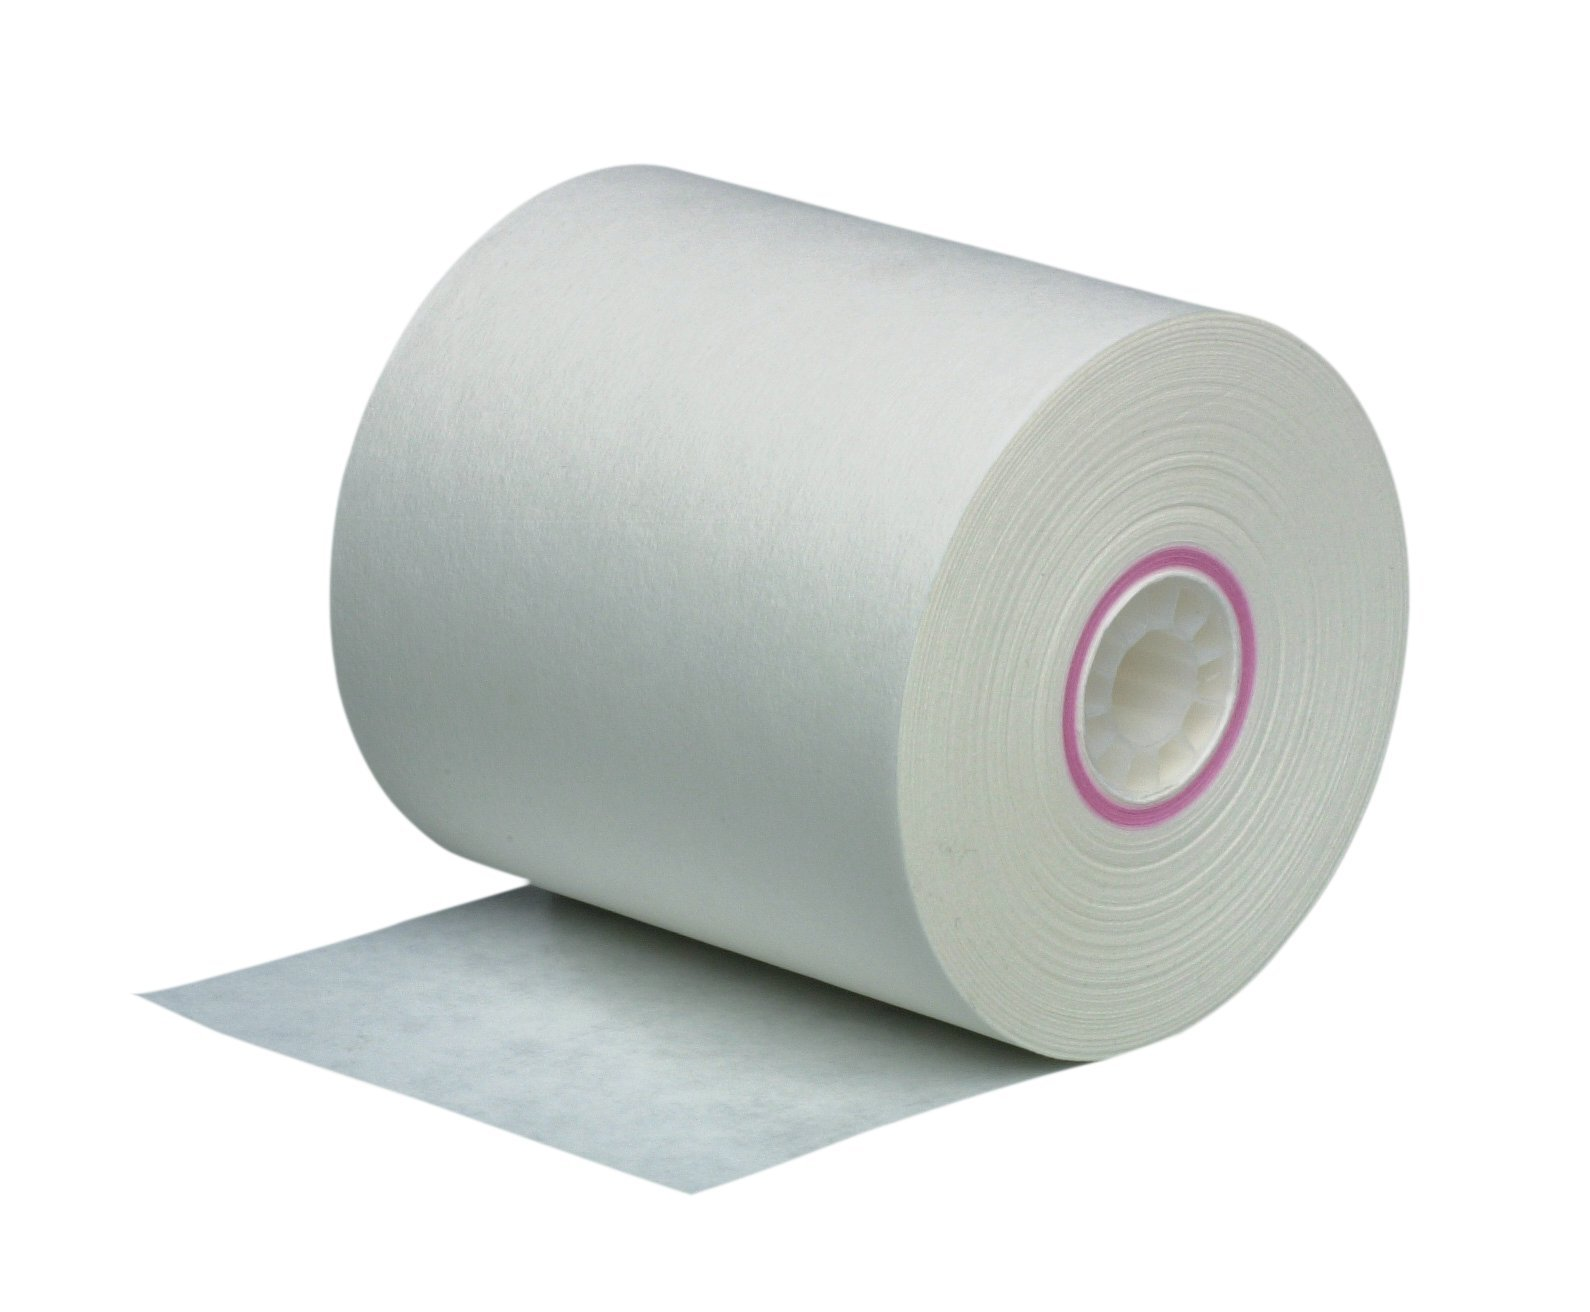 PM Company Perfection POS/Cash Register Rolls, 3 Inches X 150 Feet, White, 50 per Carton (07702) by PM Company